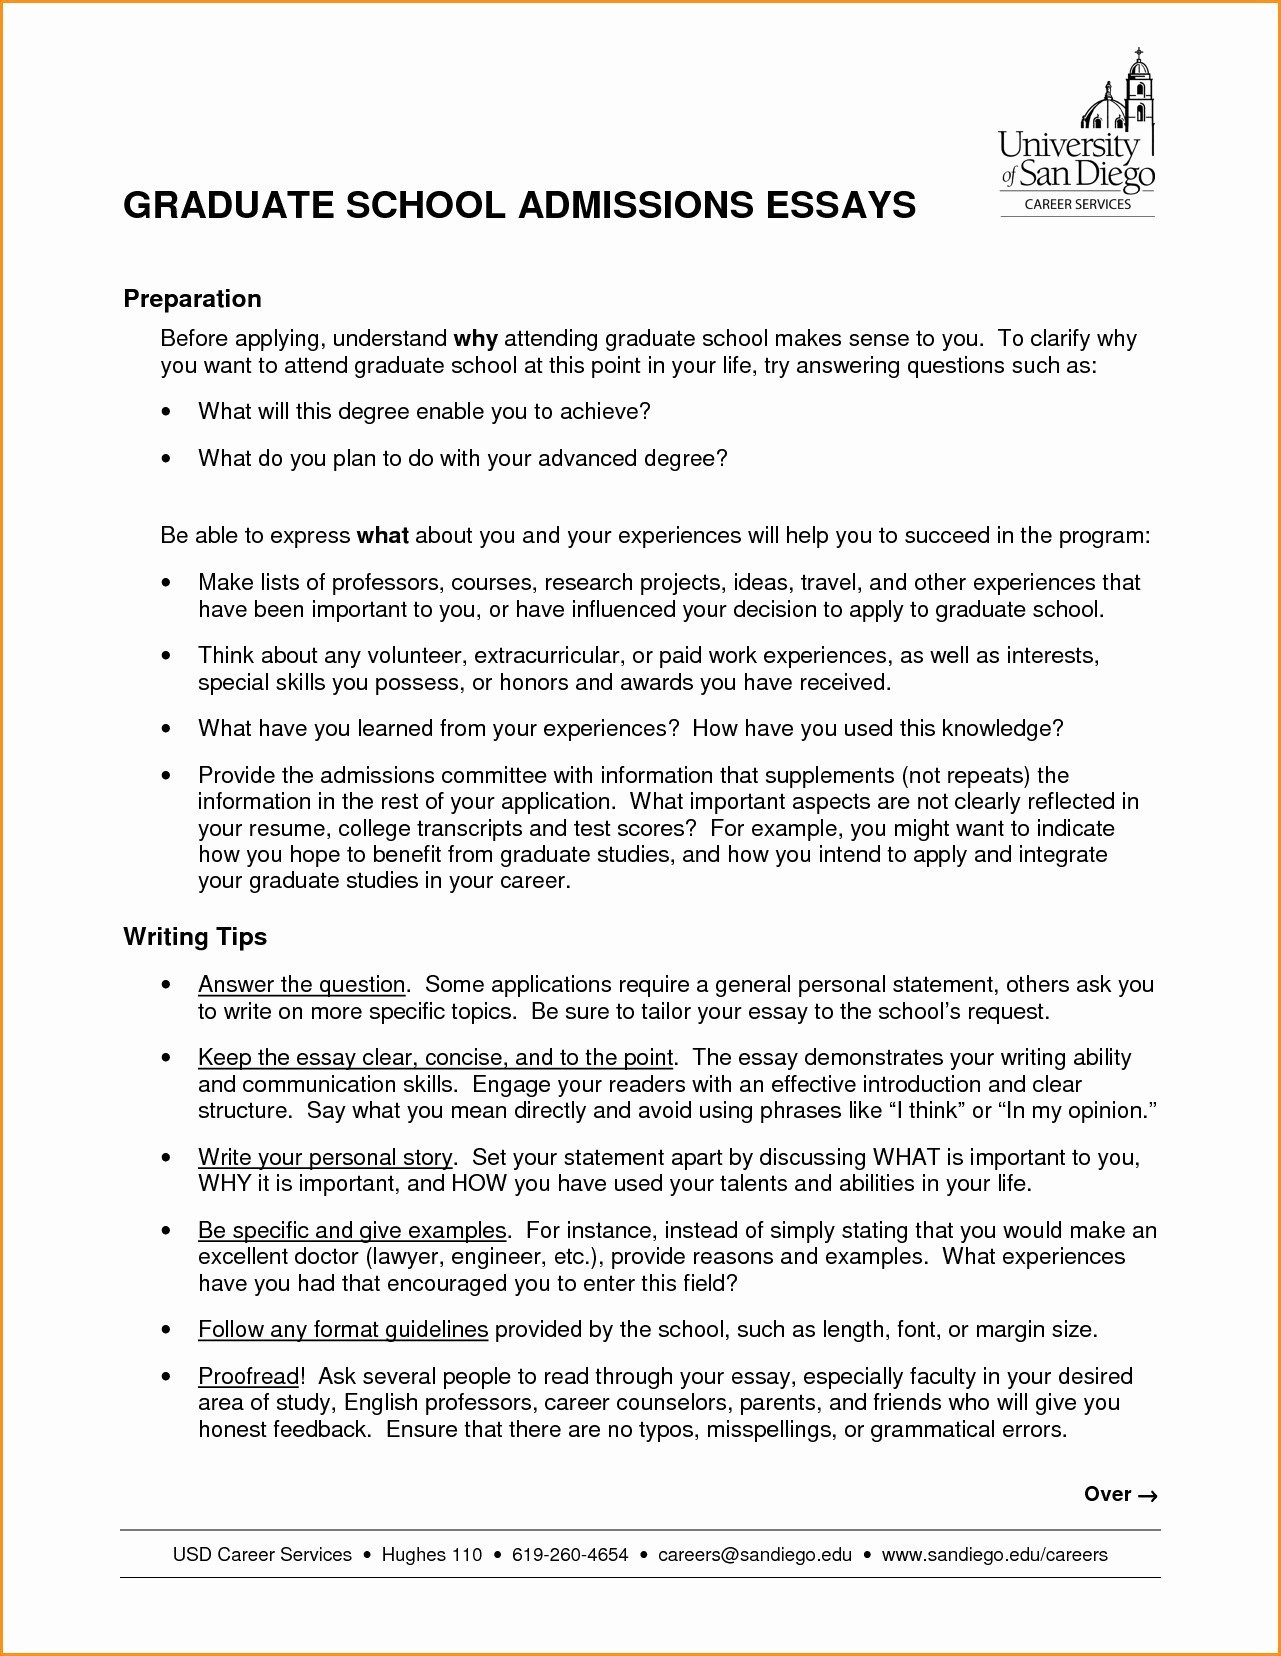 college reference letter template example-Literarywondrous Grad School Re mendation Letter Sample 2-l